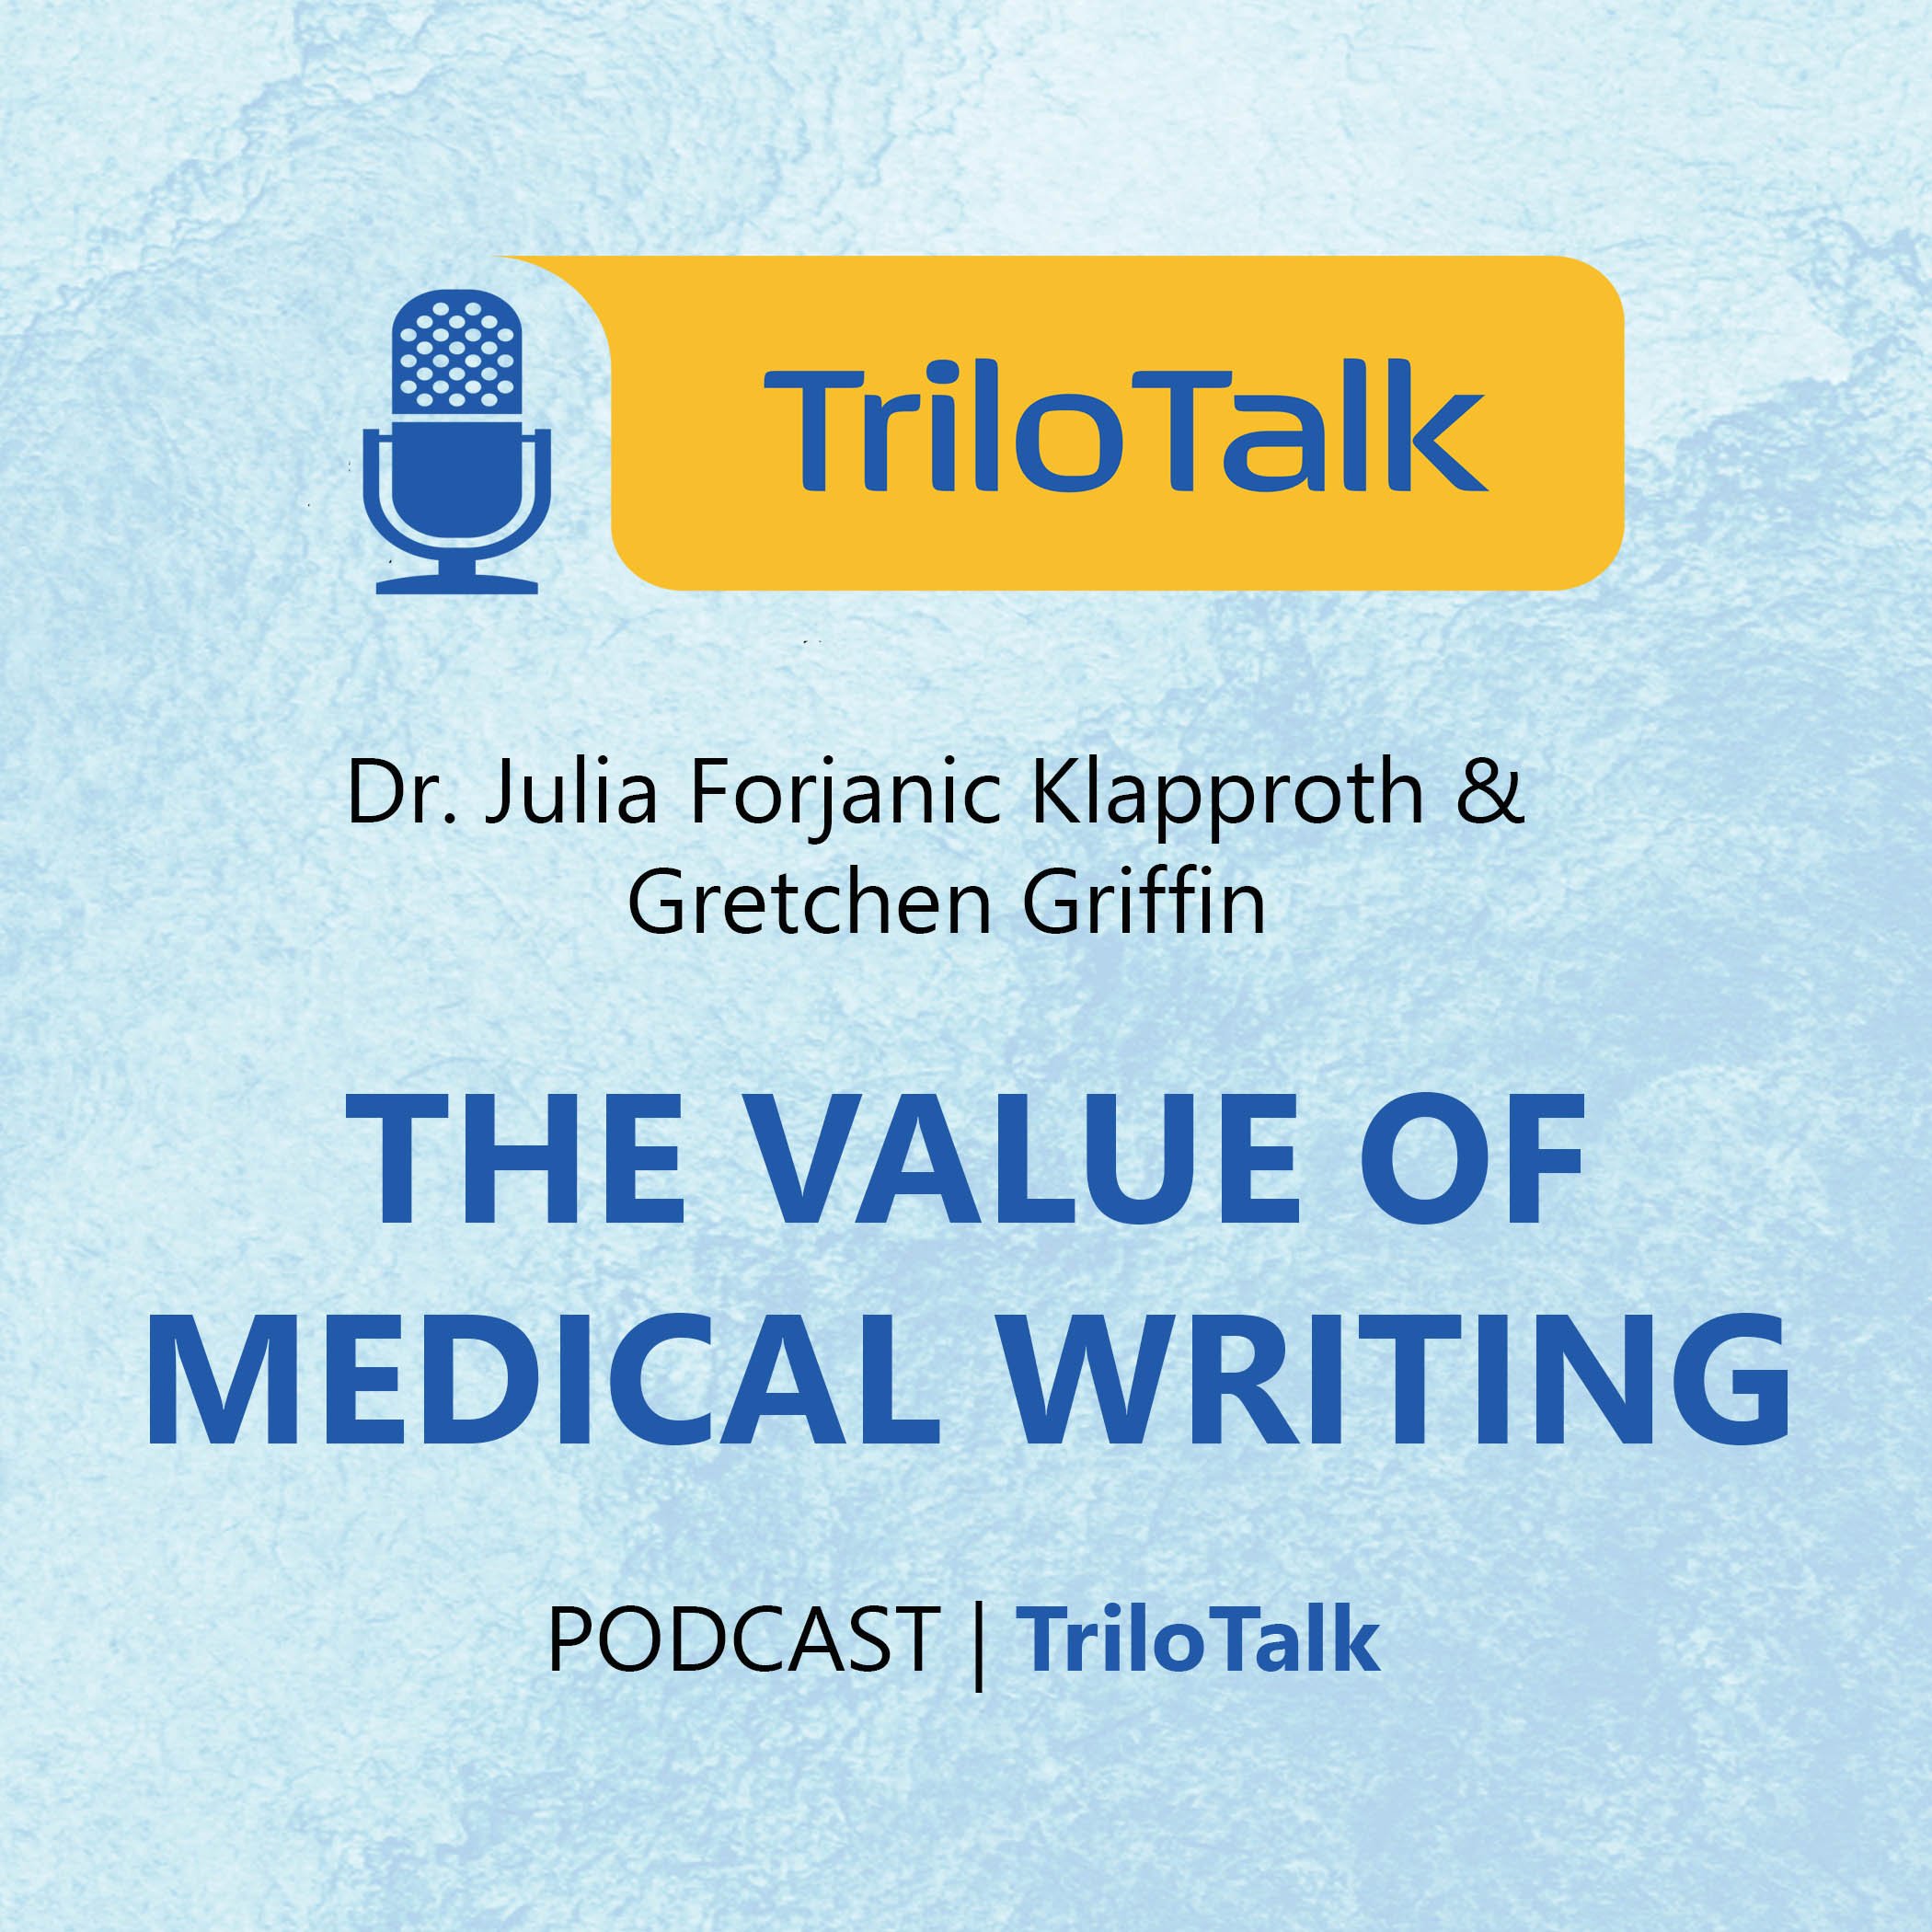 Episode 3: THE VALUE OF MEDICAL WRITING